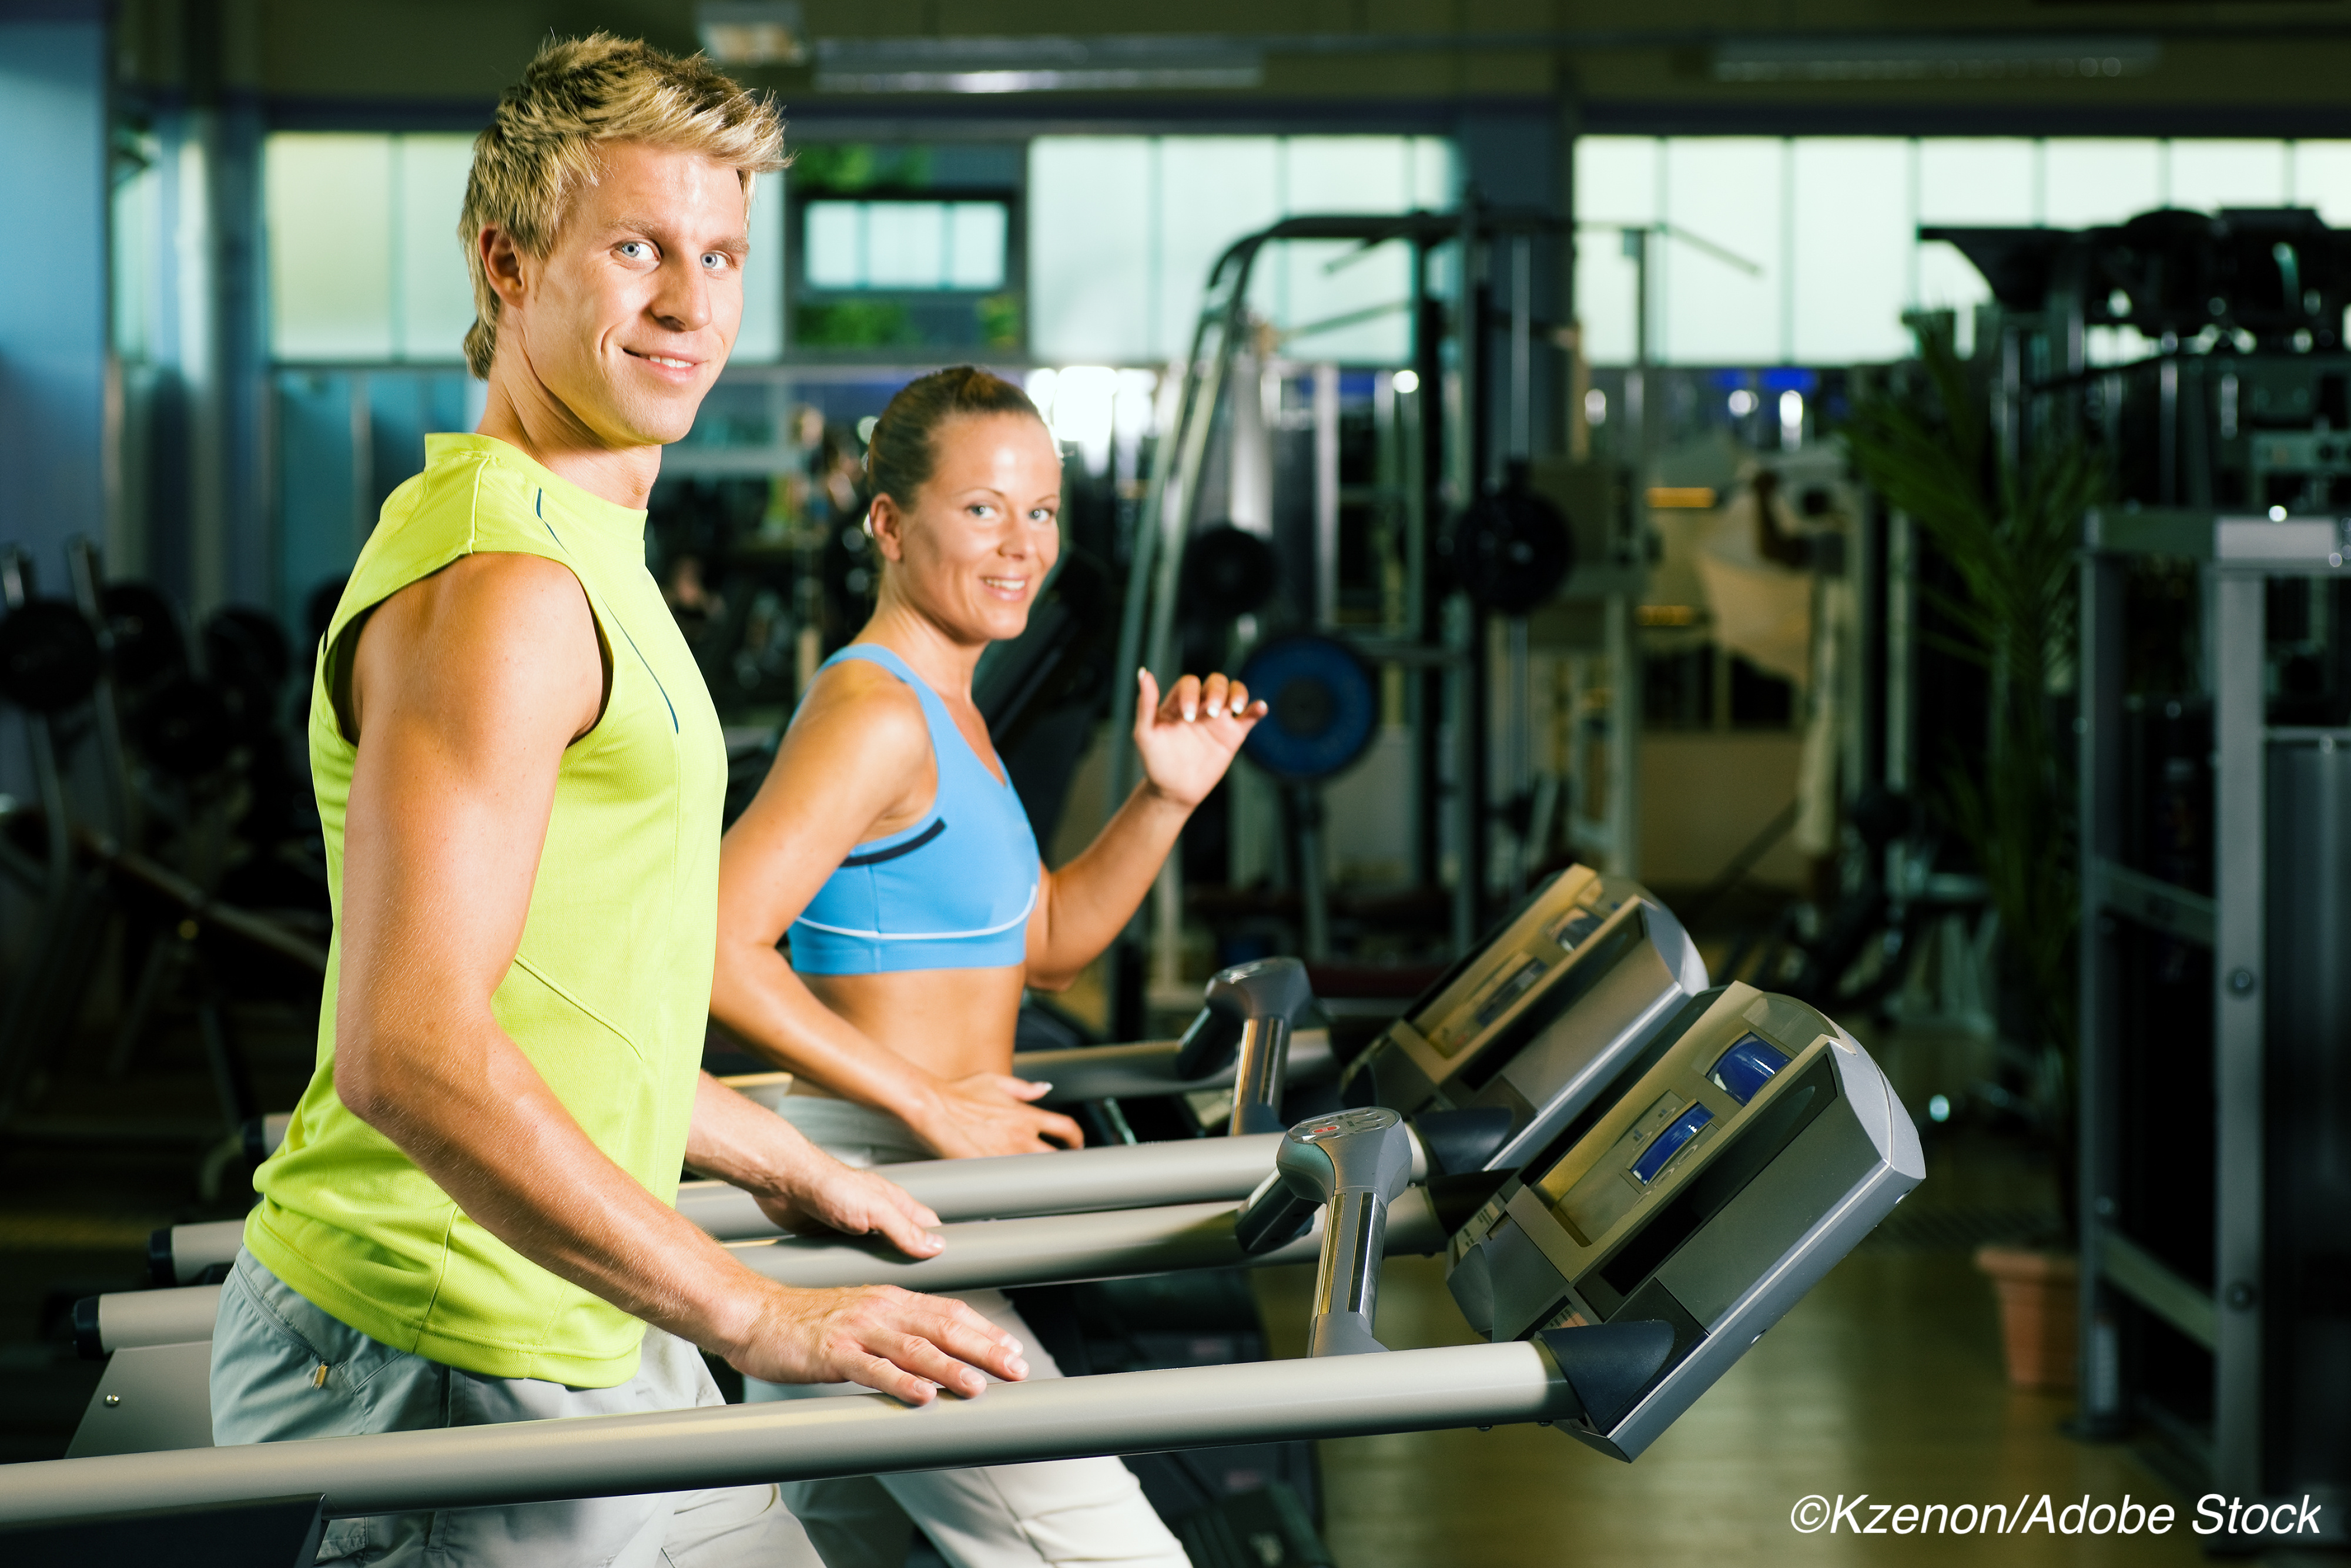 Vigorous Physical Activity and Left Ventricular Noncompaction